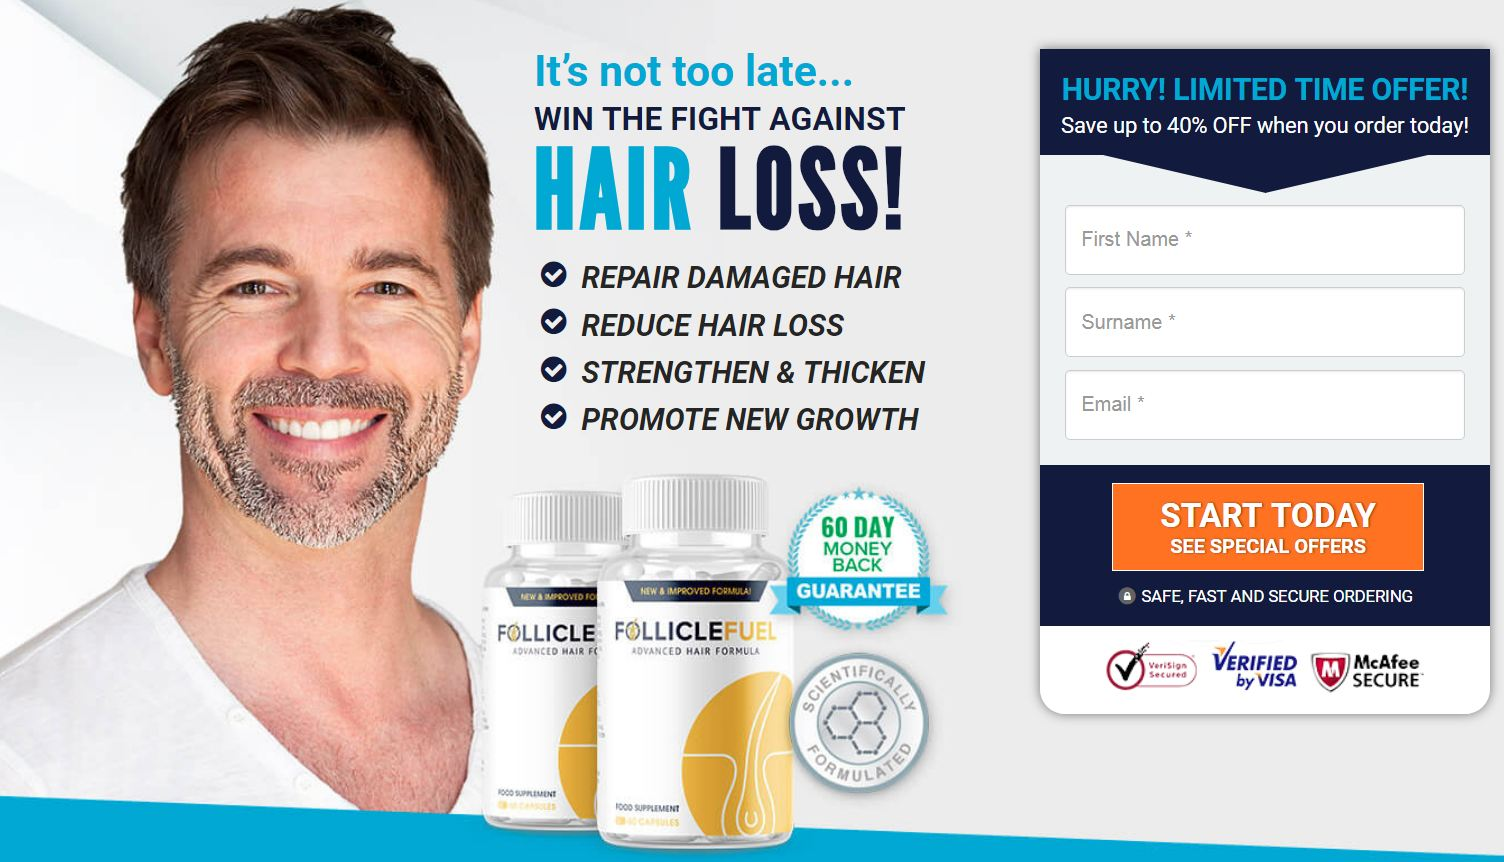 FollicleFuel Advanced Hair Formula Pills